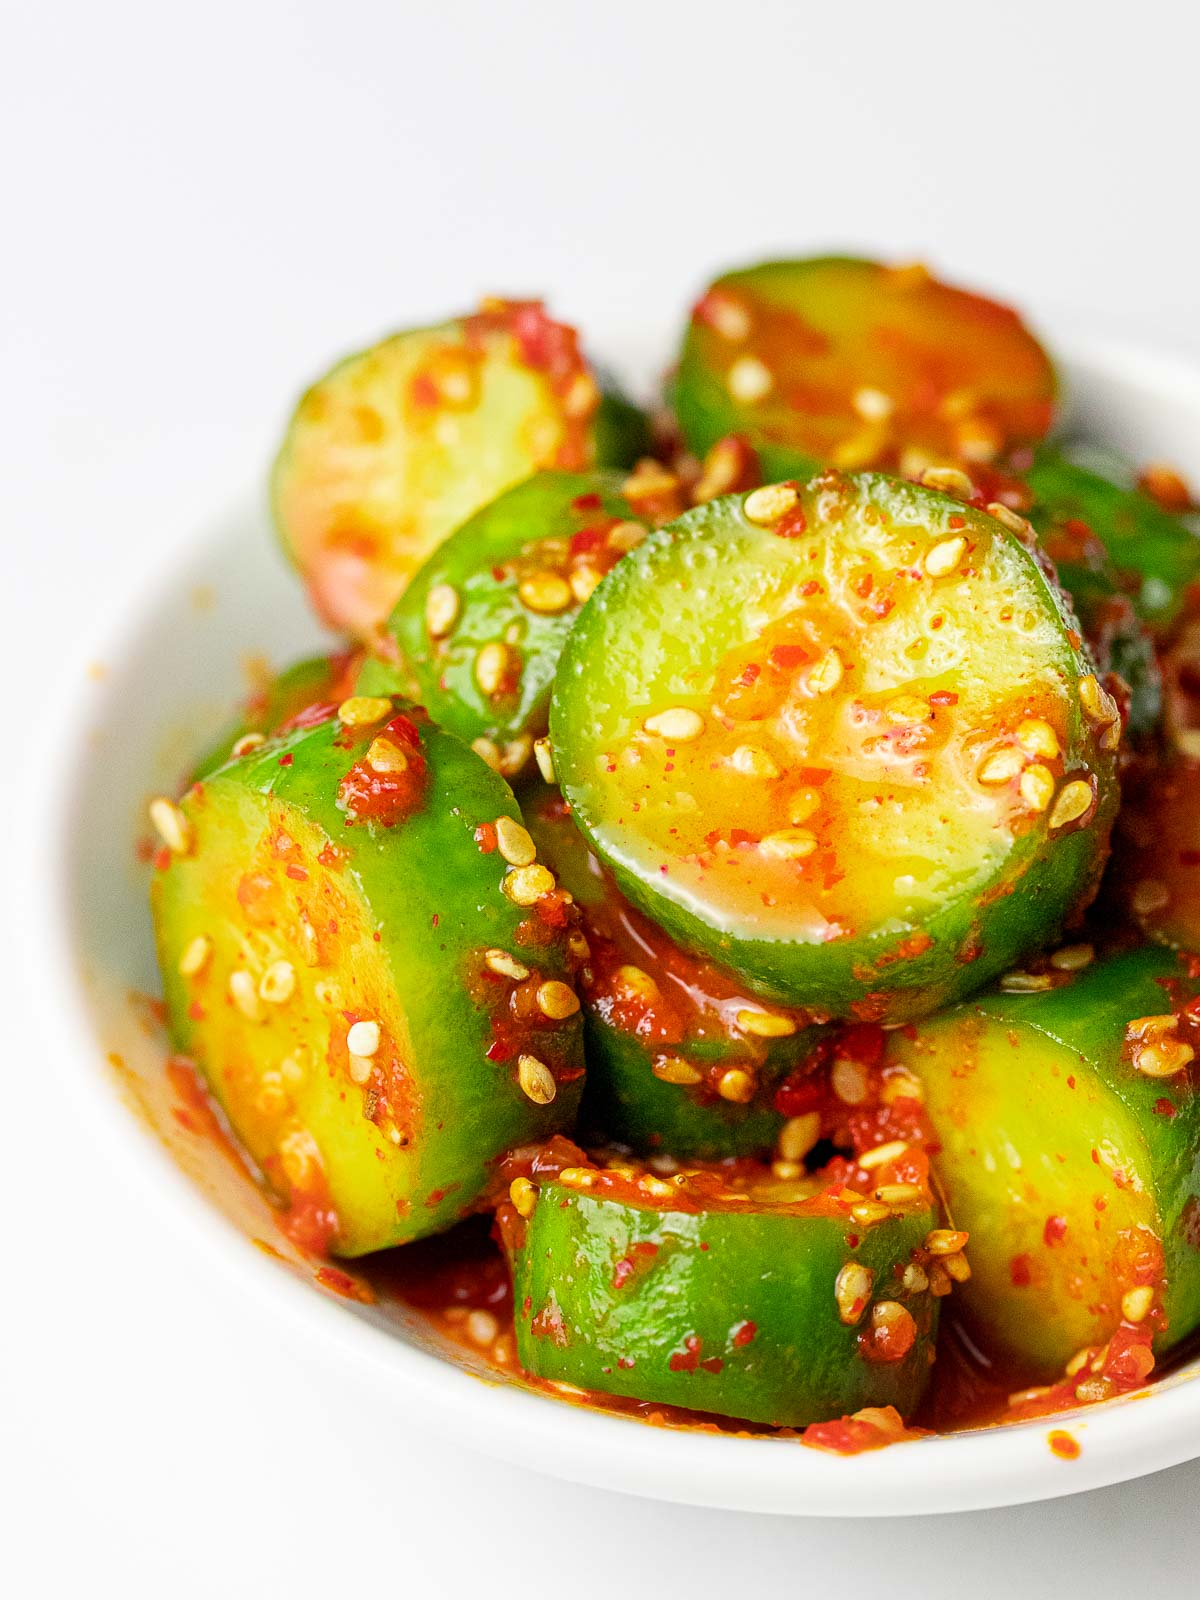 spicy Korean cucumber side dish with sesame seeds on a white plate